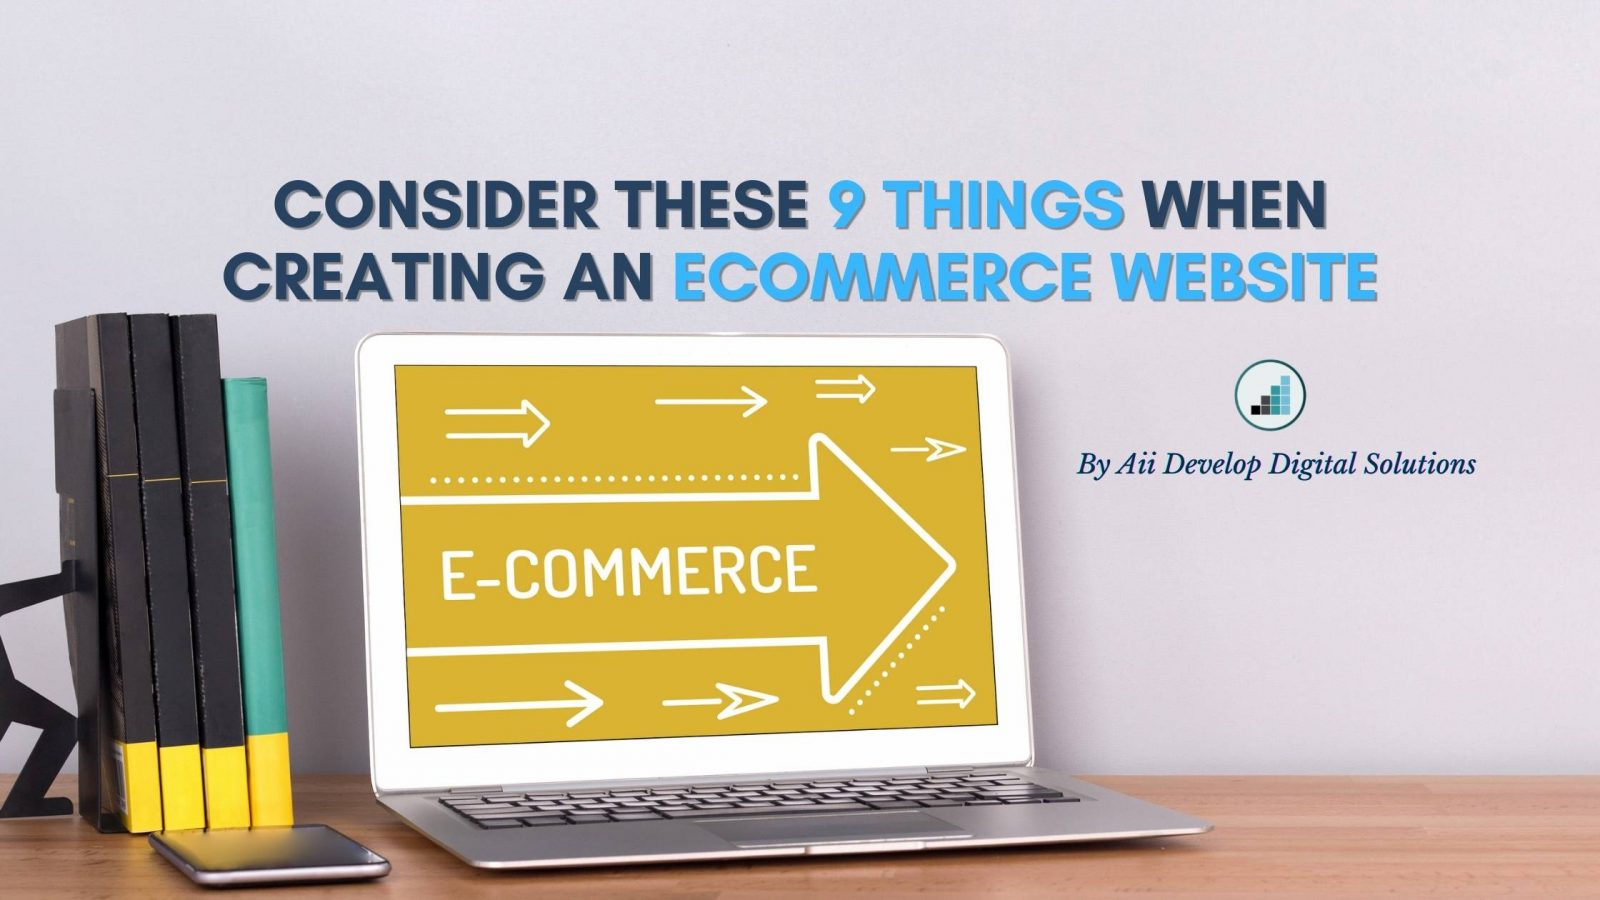 Consider These 9 Things When Creating an Ecommerce Website